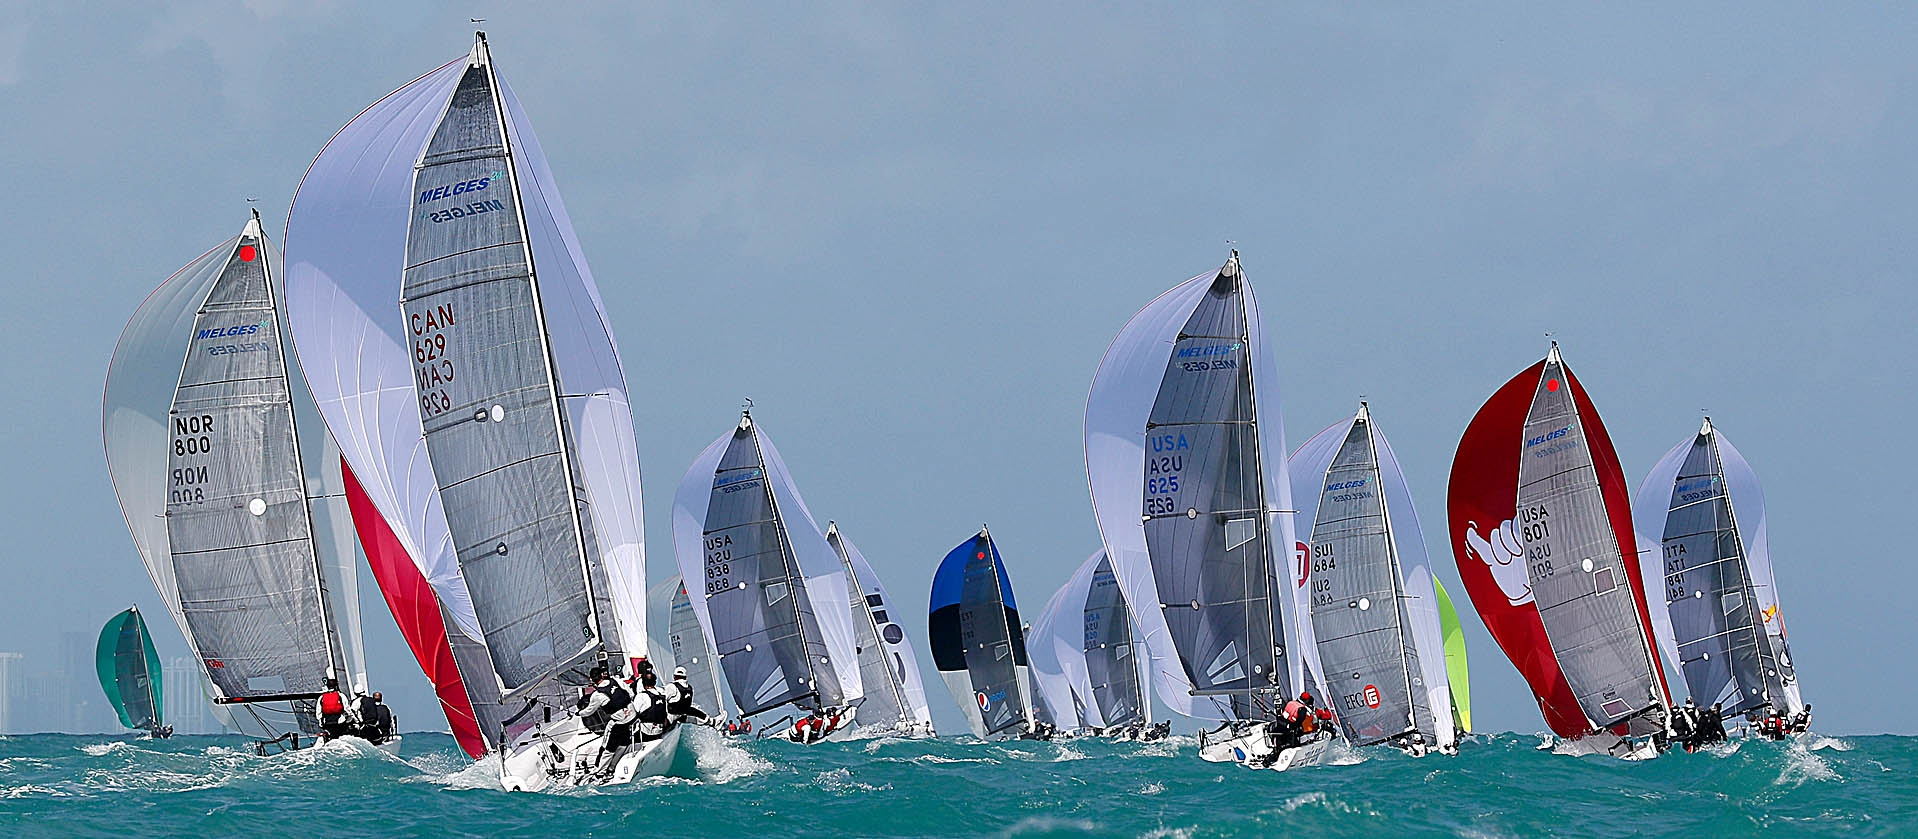 2016 Melges 24 World Championship in Miami, USA